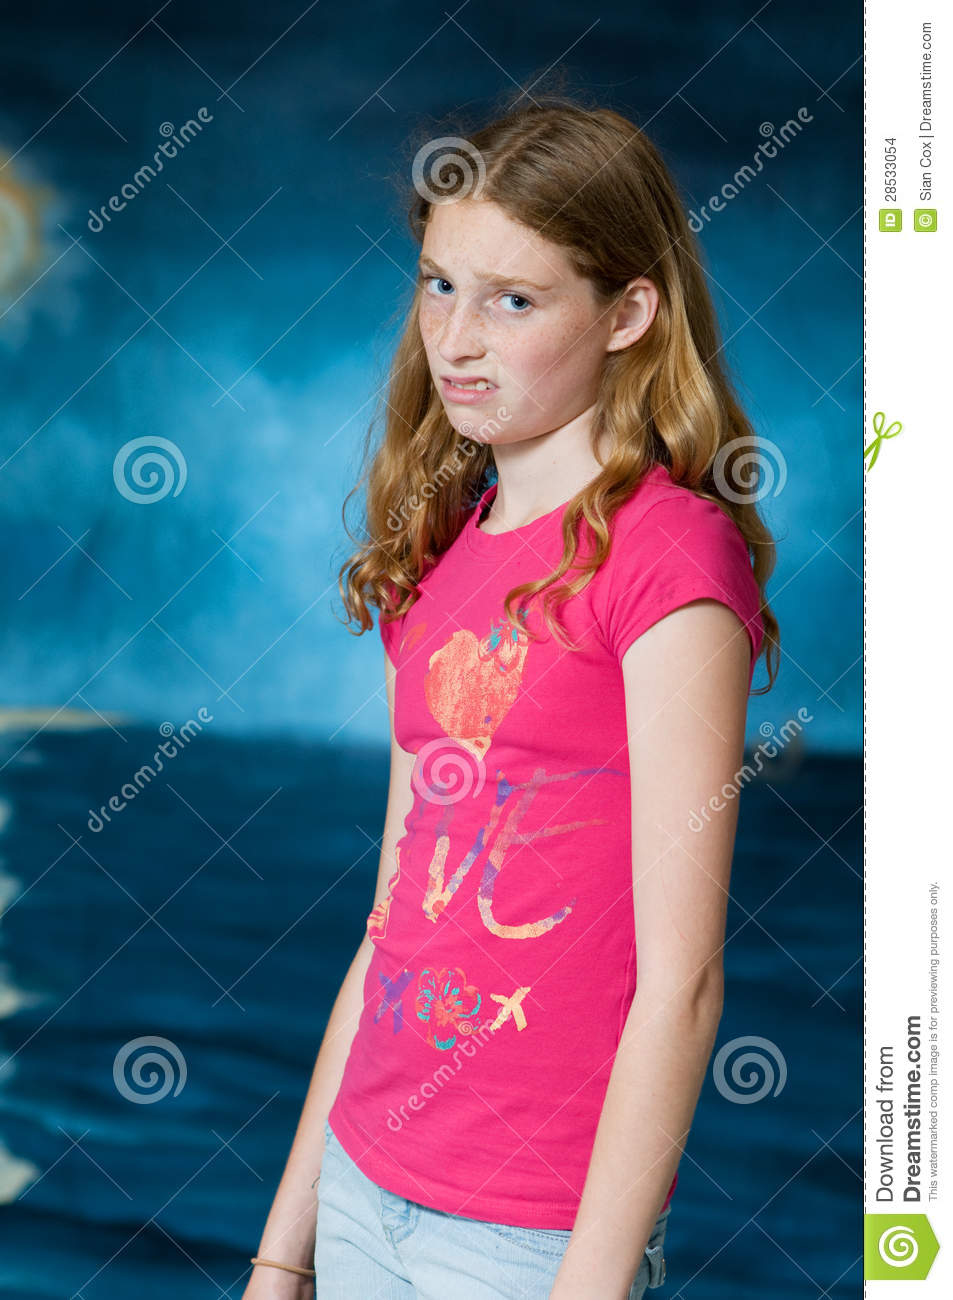 Teen Attitude Stock Images - Image: 28533054